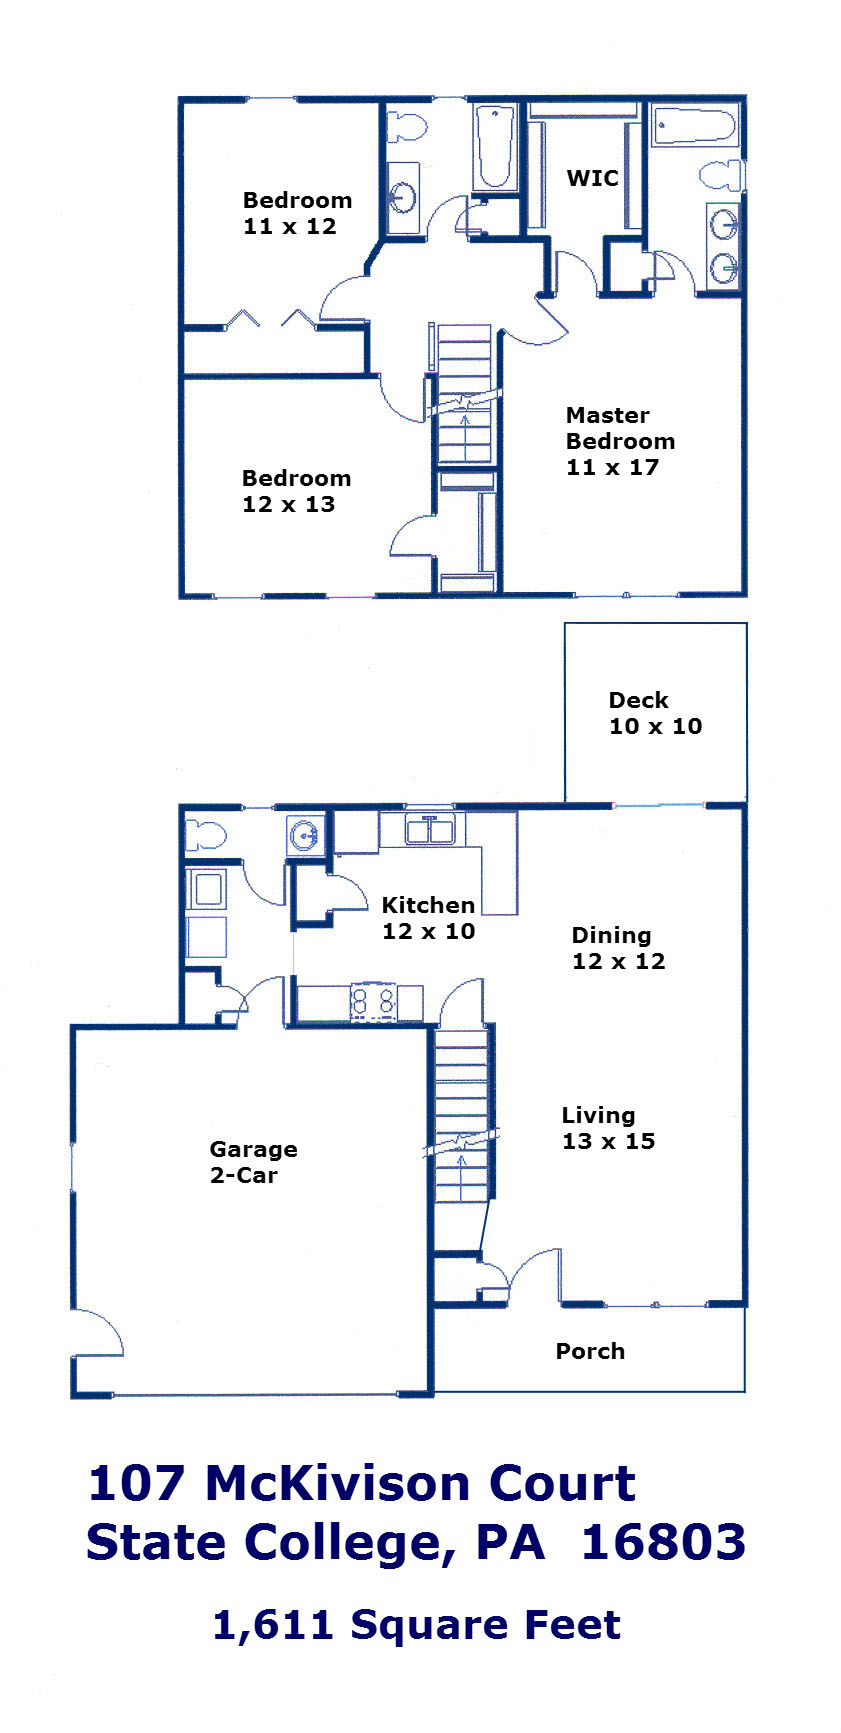 Floor plan of the 3 bedroom house for rent at 107 McKivison Court